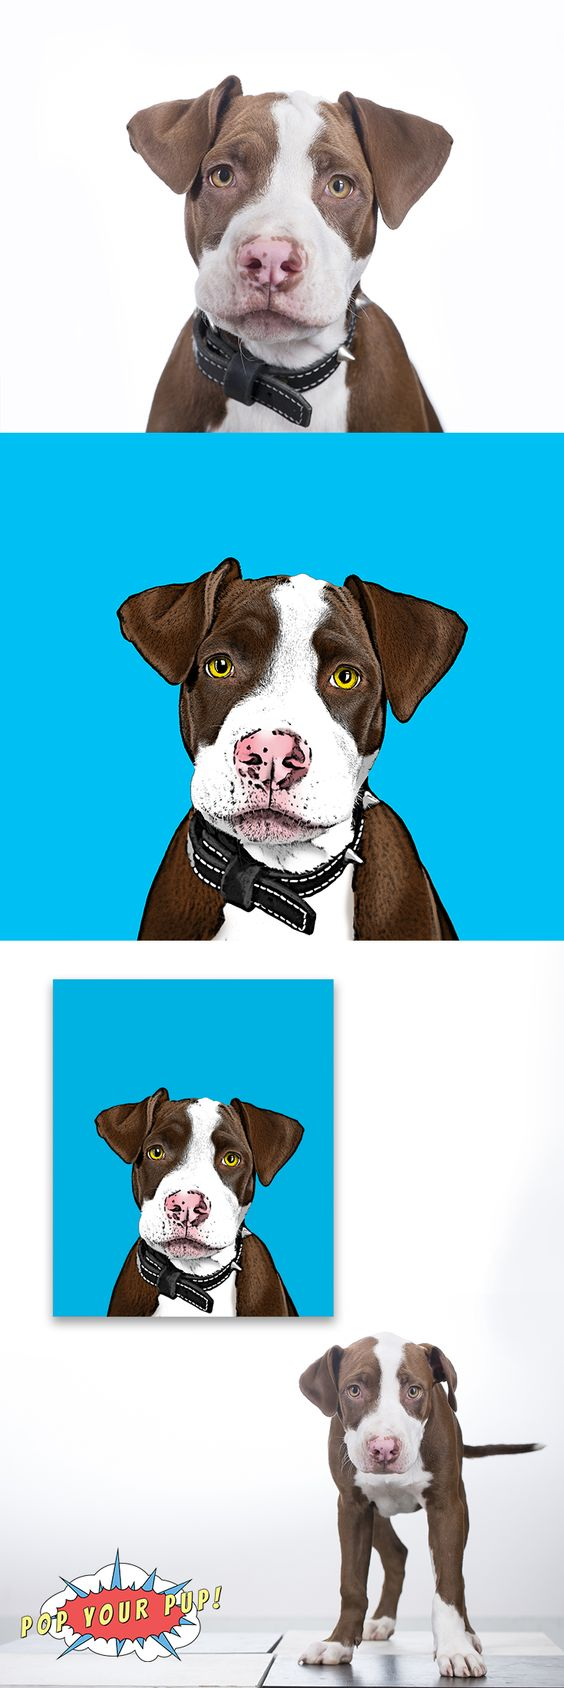 Get your pet custom designed into Pop Art! All created by a real graphic artist that you work with directly. Hand stretched on Premium canvas! www.popyourpup.com Use code pin15 for 15% off of your order